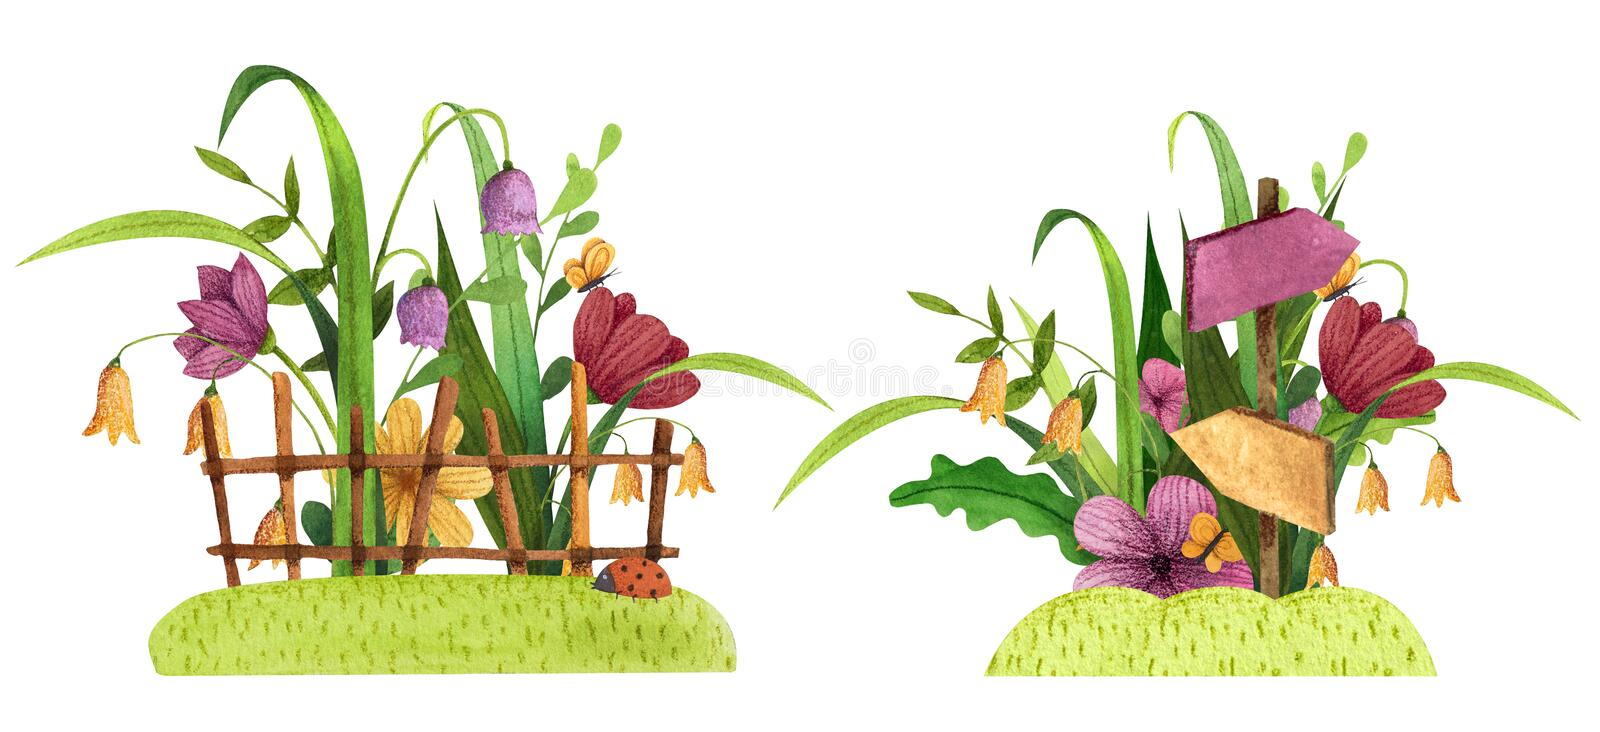 Set of spring, summer garden and forest bouquets with grass, fence, flowers, leaves and branches. Hand drawn watercolor and colored pencils illustration vector illustration